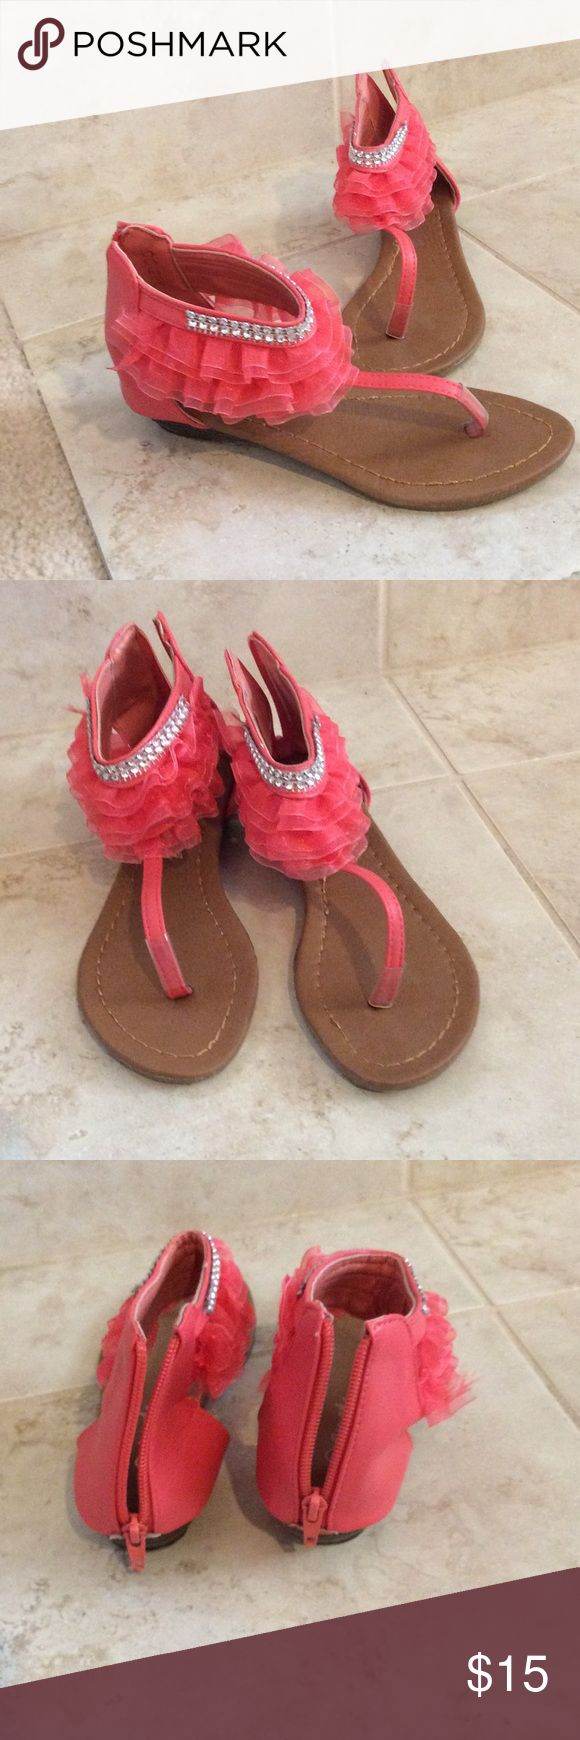 Coral Sandals Used Ameta Coral sandals with coral ruffles and ringtone accent. Shoes Sandals & Flip Flops